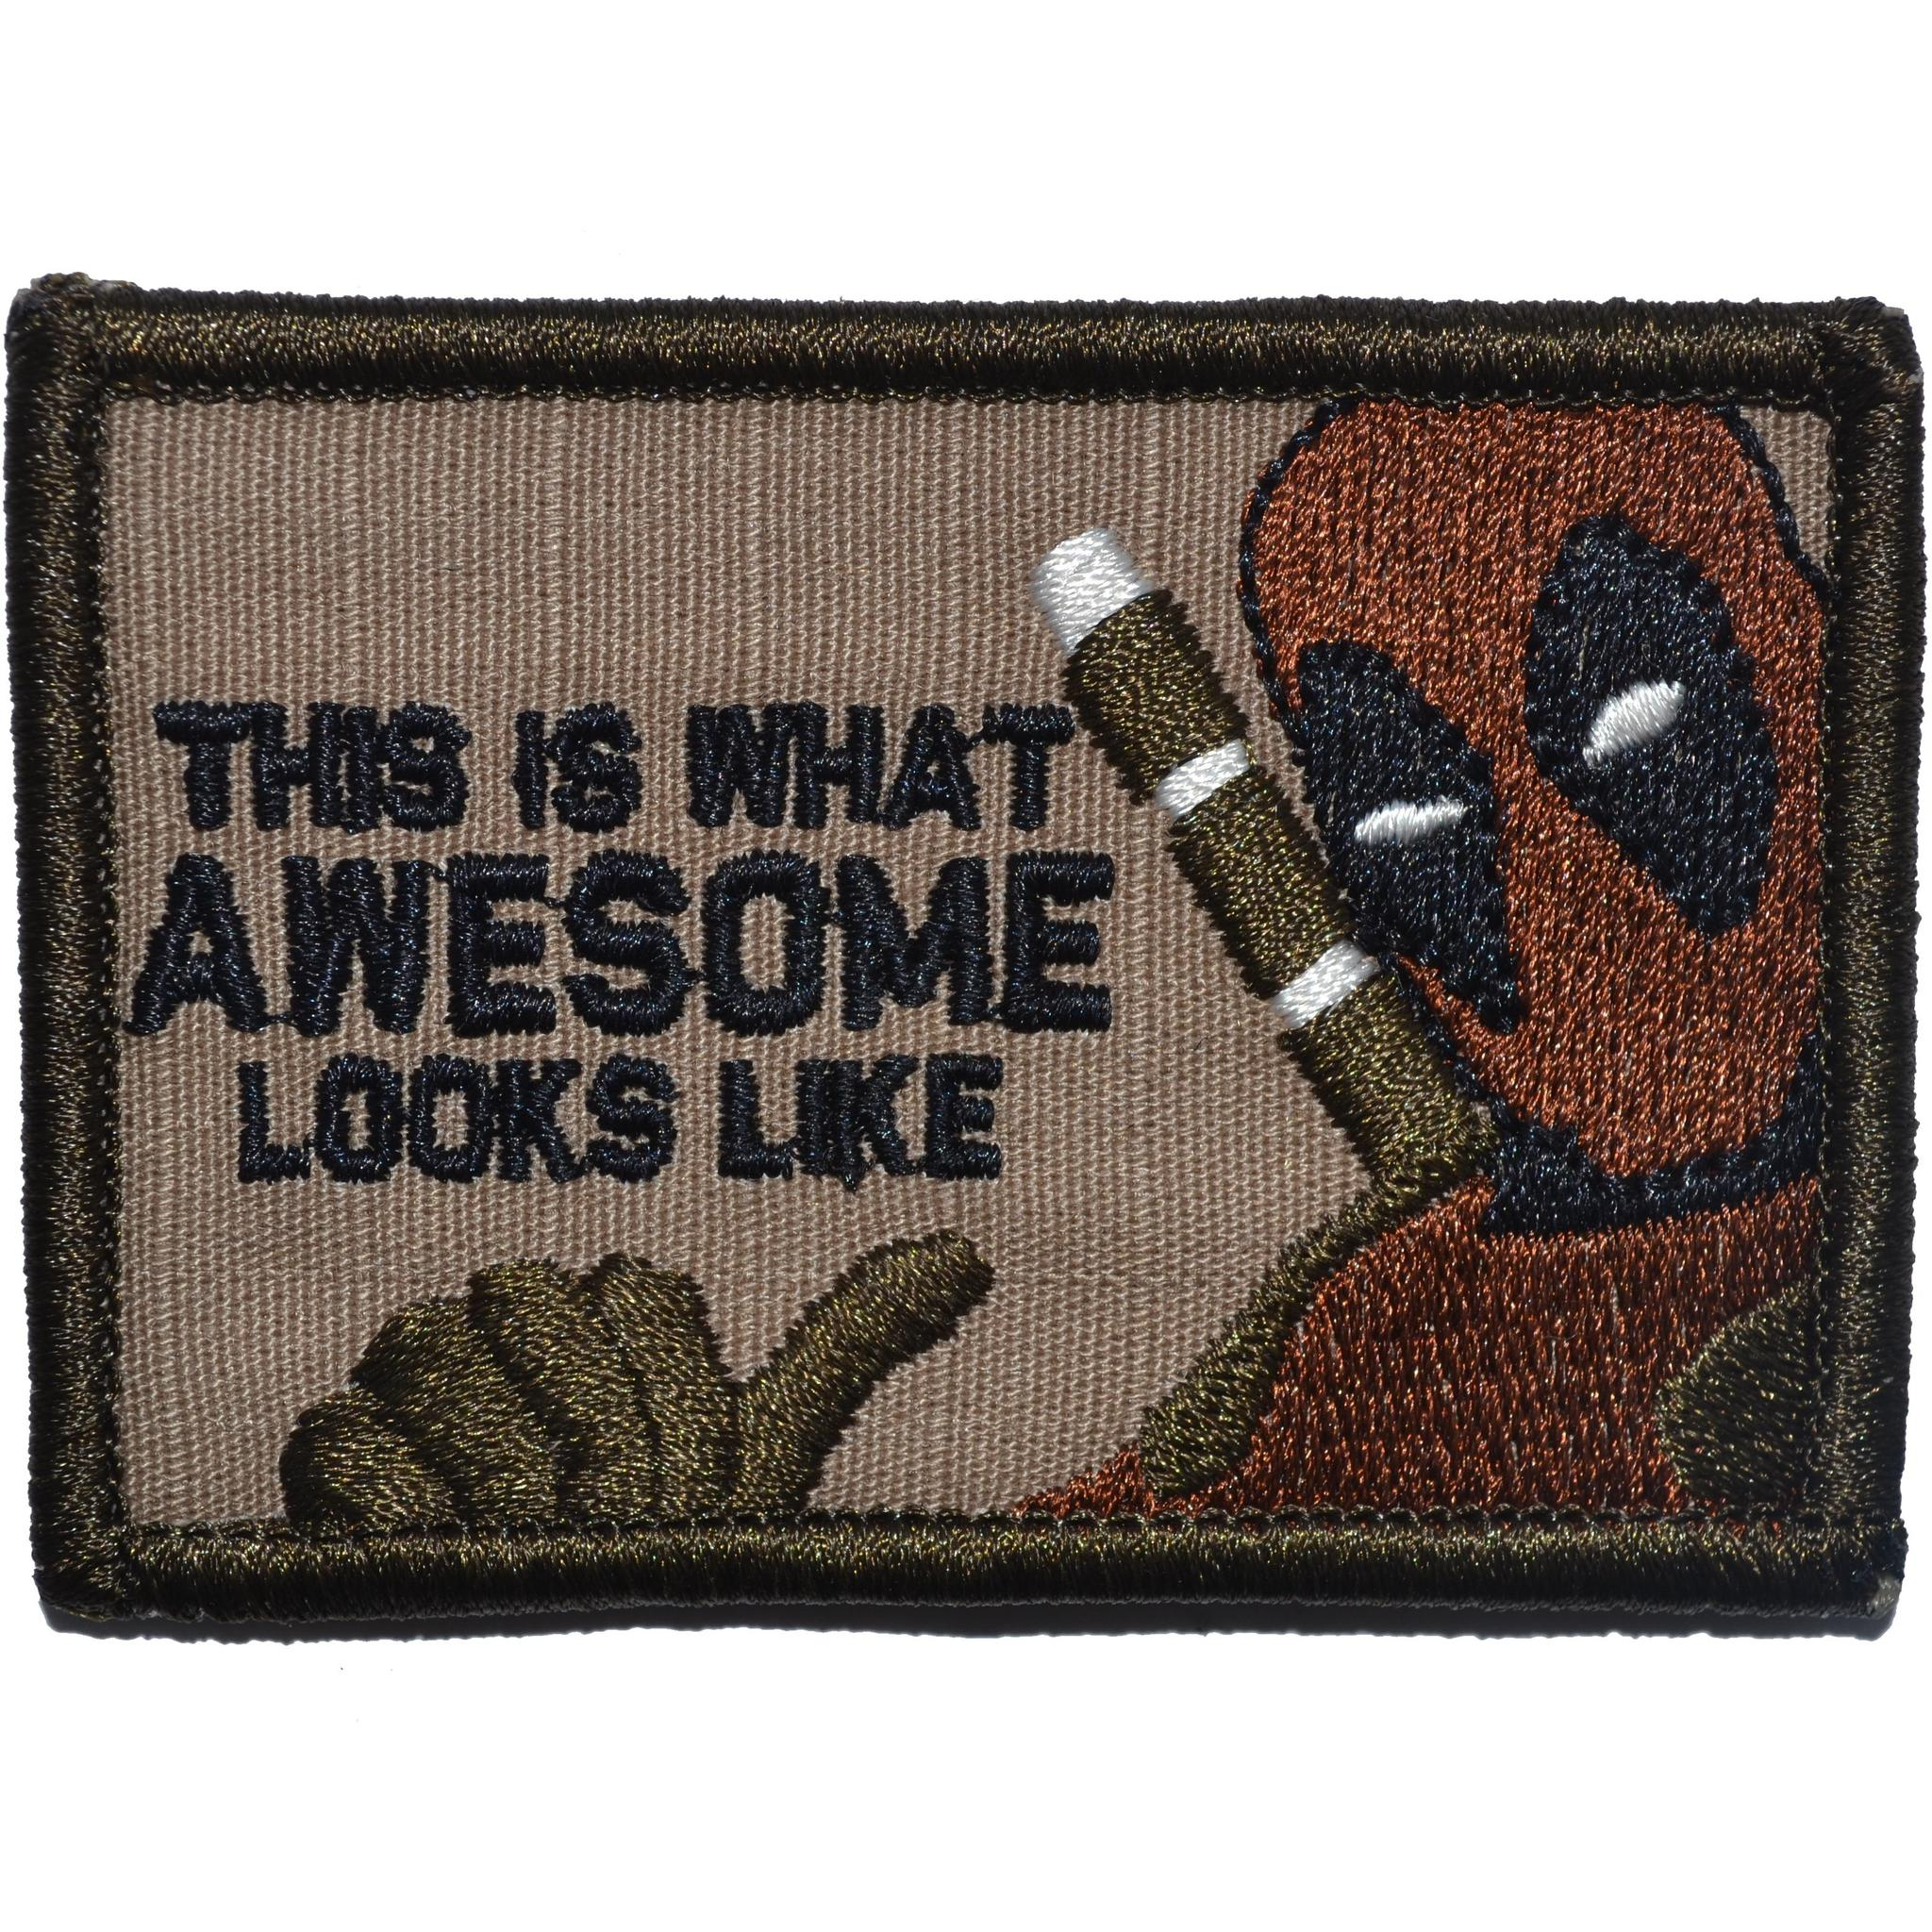 This is What Awesome Looks Like, Deadpool Parody - 2x3 Patch